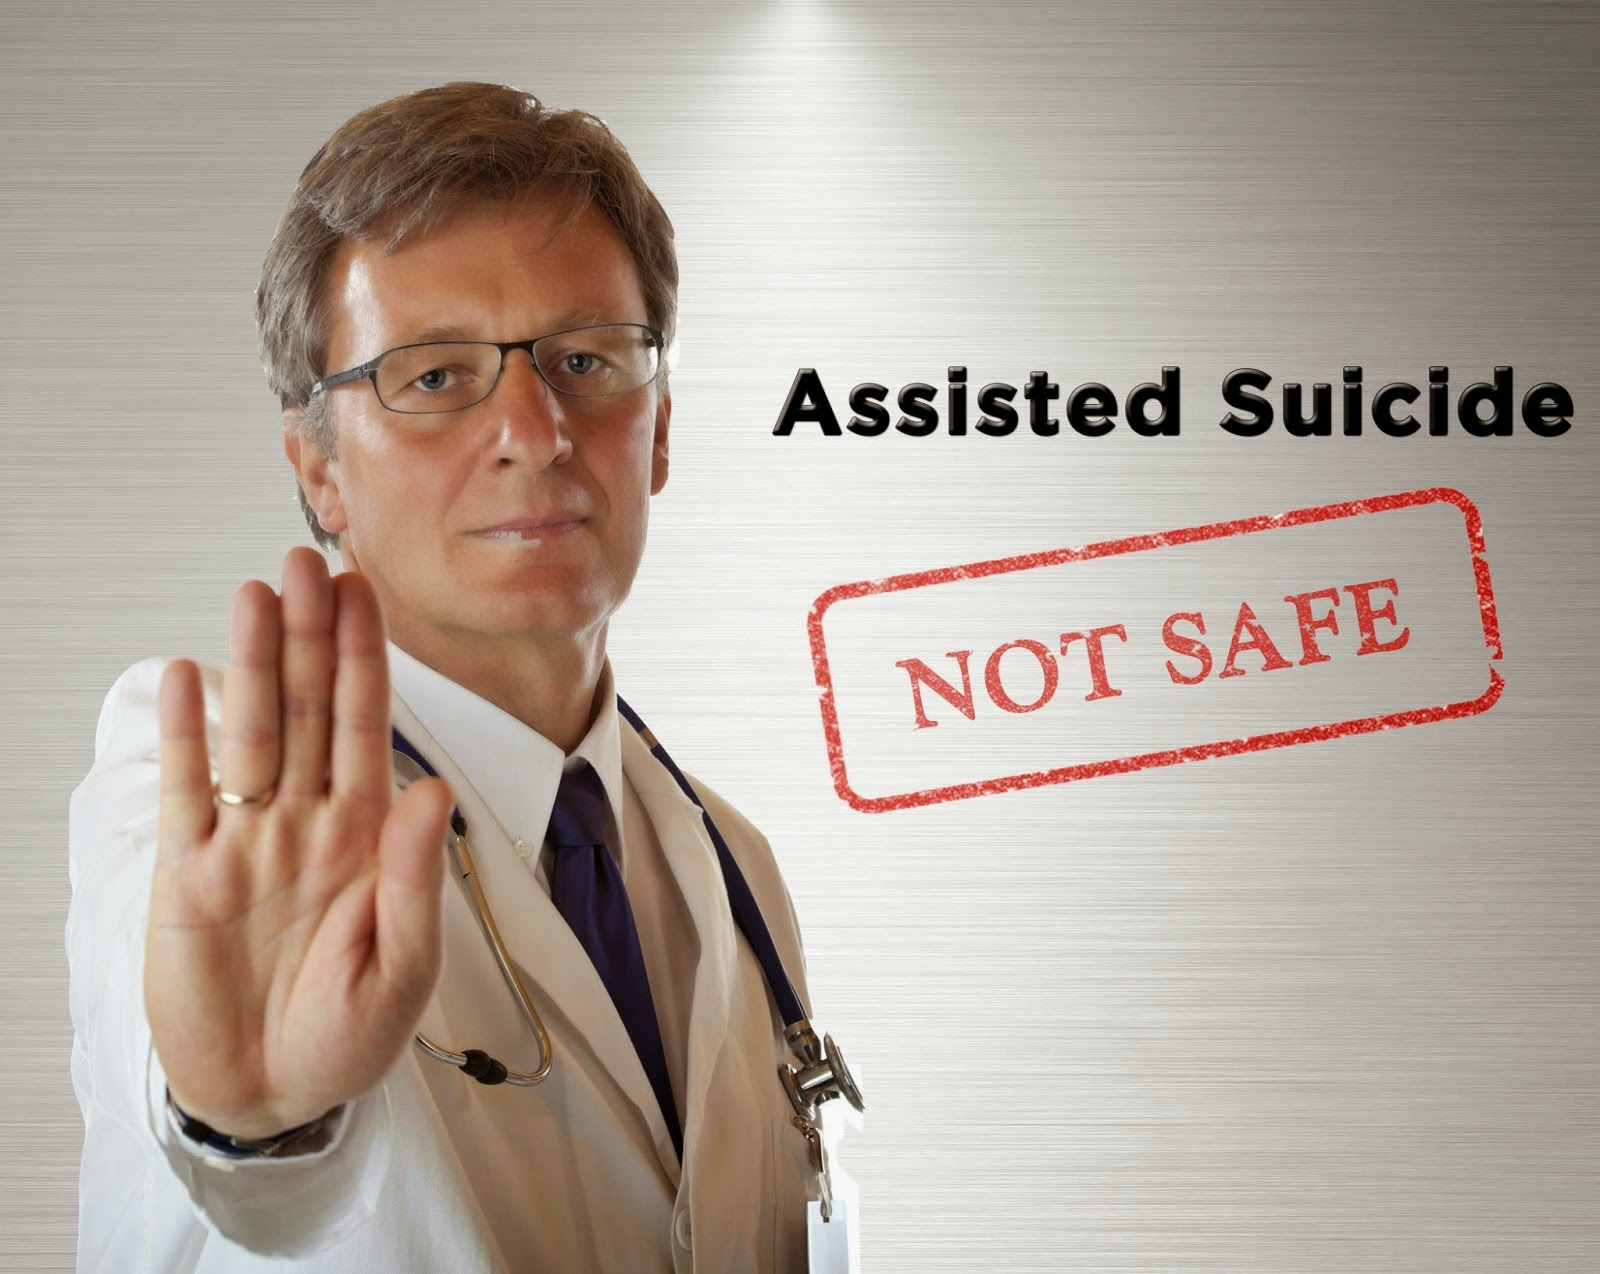 a research on physician assisted suicide Four leading healthcare thought leaders debated the pros and cons of physician-assisted suicide  suicide finlay stated that research in  physician-suicide.